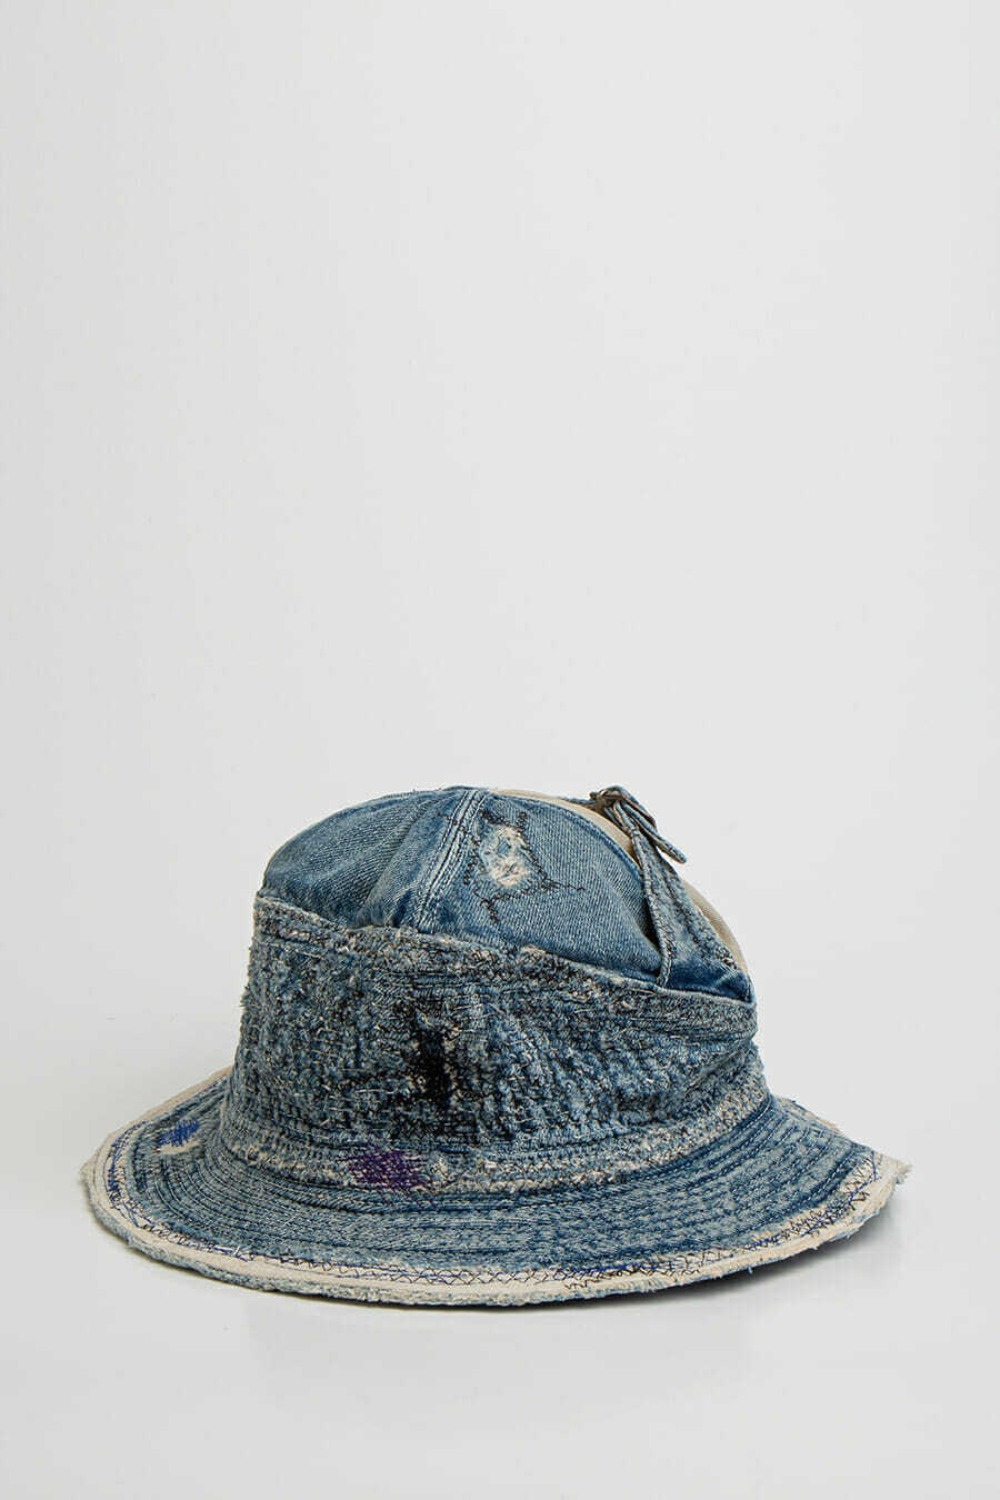 12OZ DENIM THE OLD MAN AND THE SEAT HAT(CRASH REMA INDIGO)